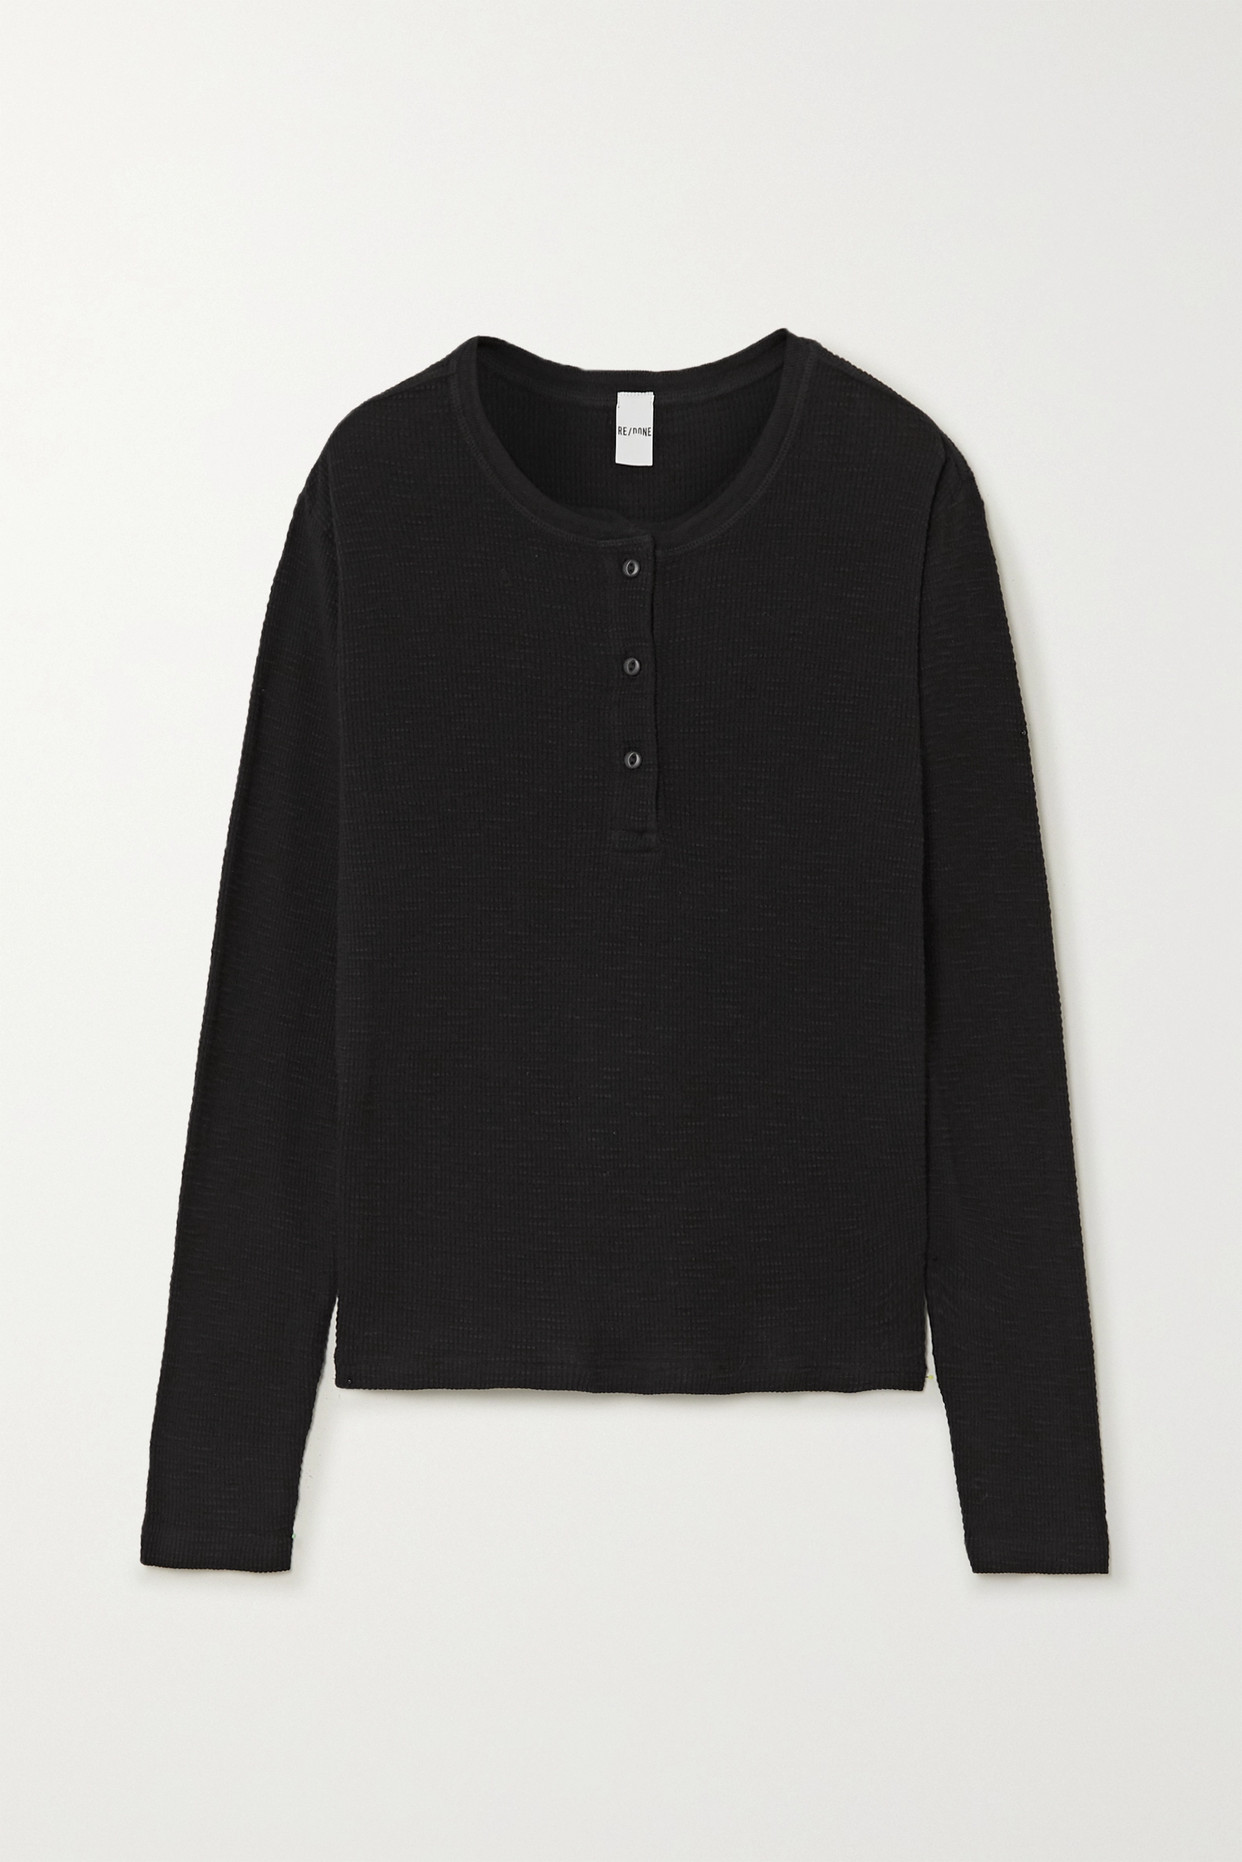 RE/DONE - Waffle-knit Cotton-jersey Top - Black - small